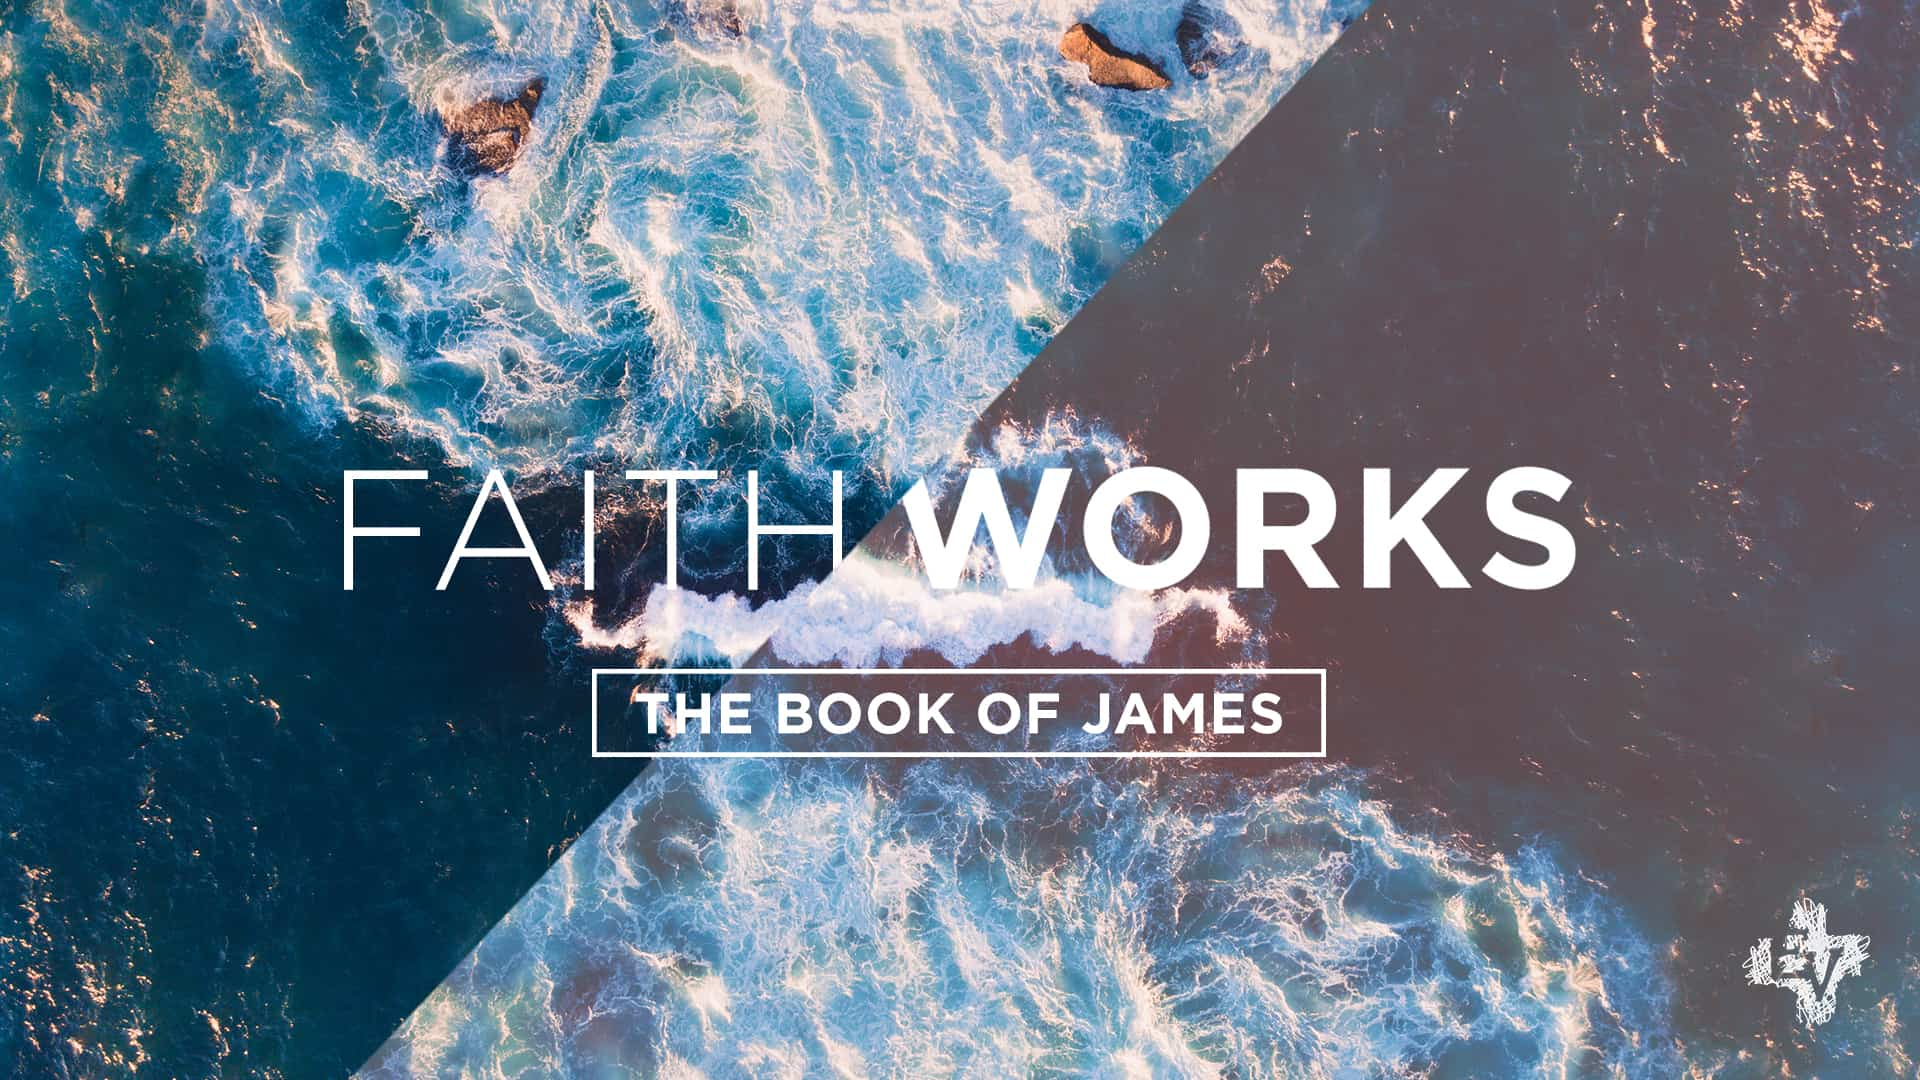 James: Faith Works